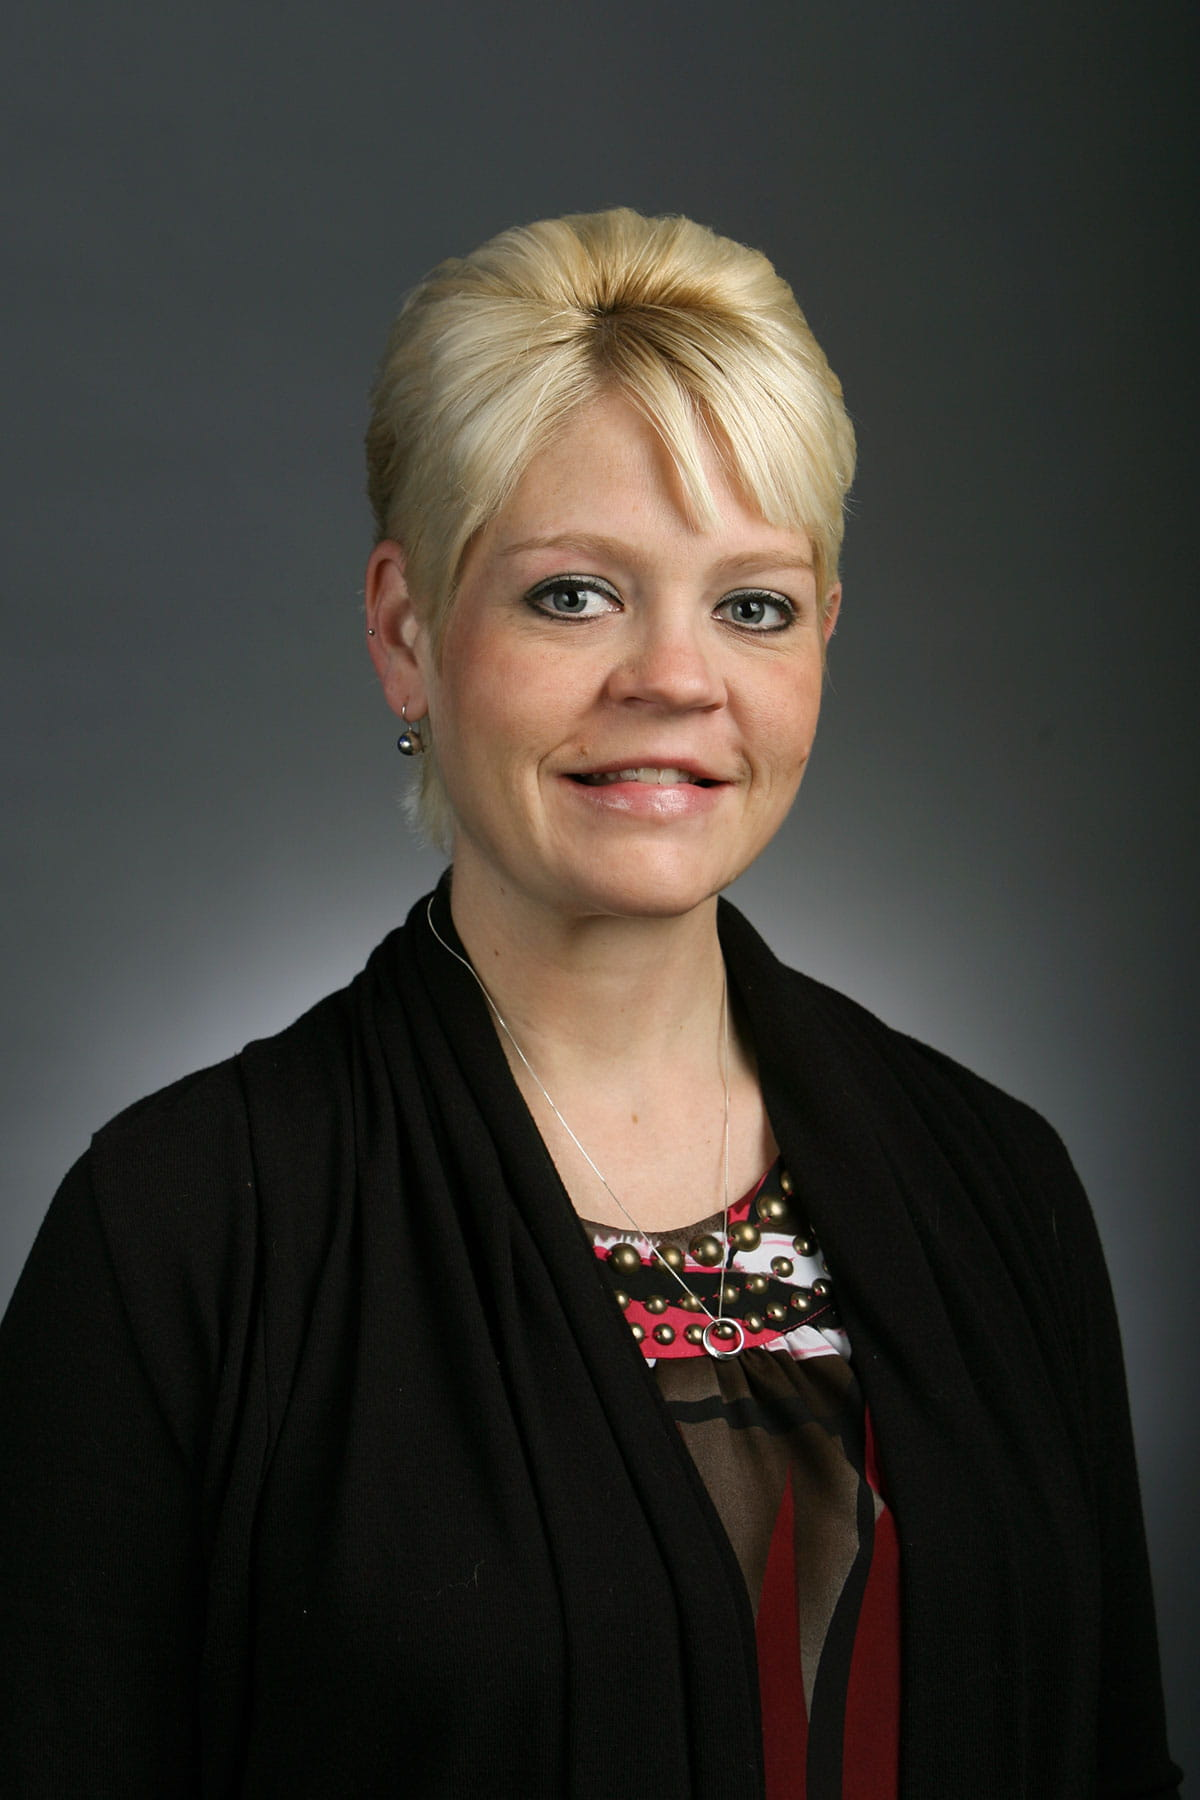 A photo of Kristi Van Vranken.